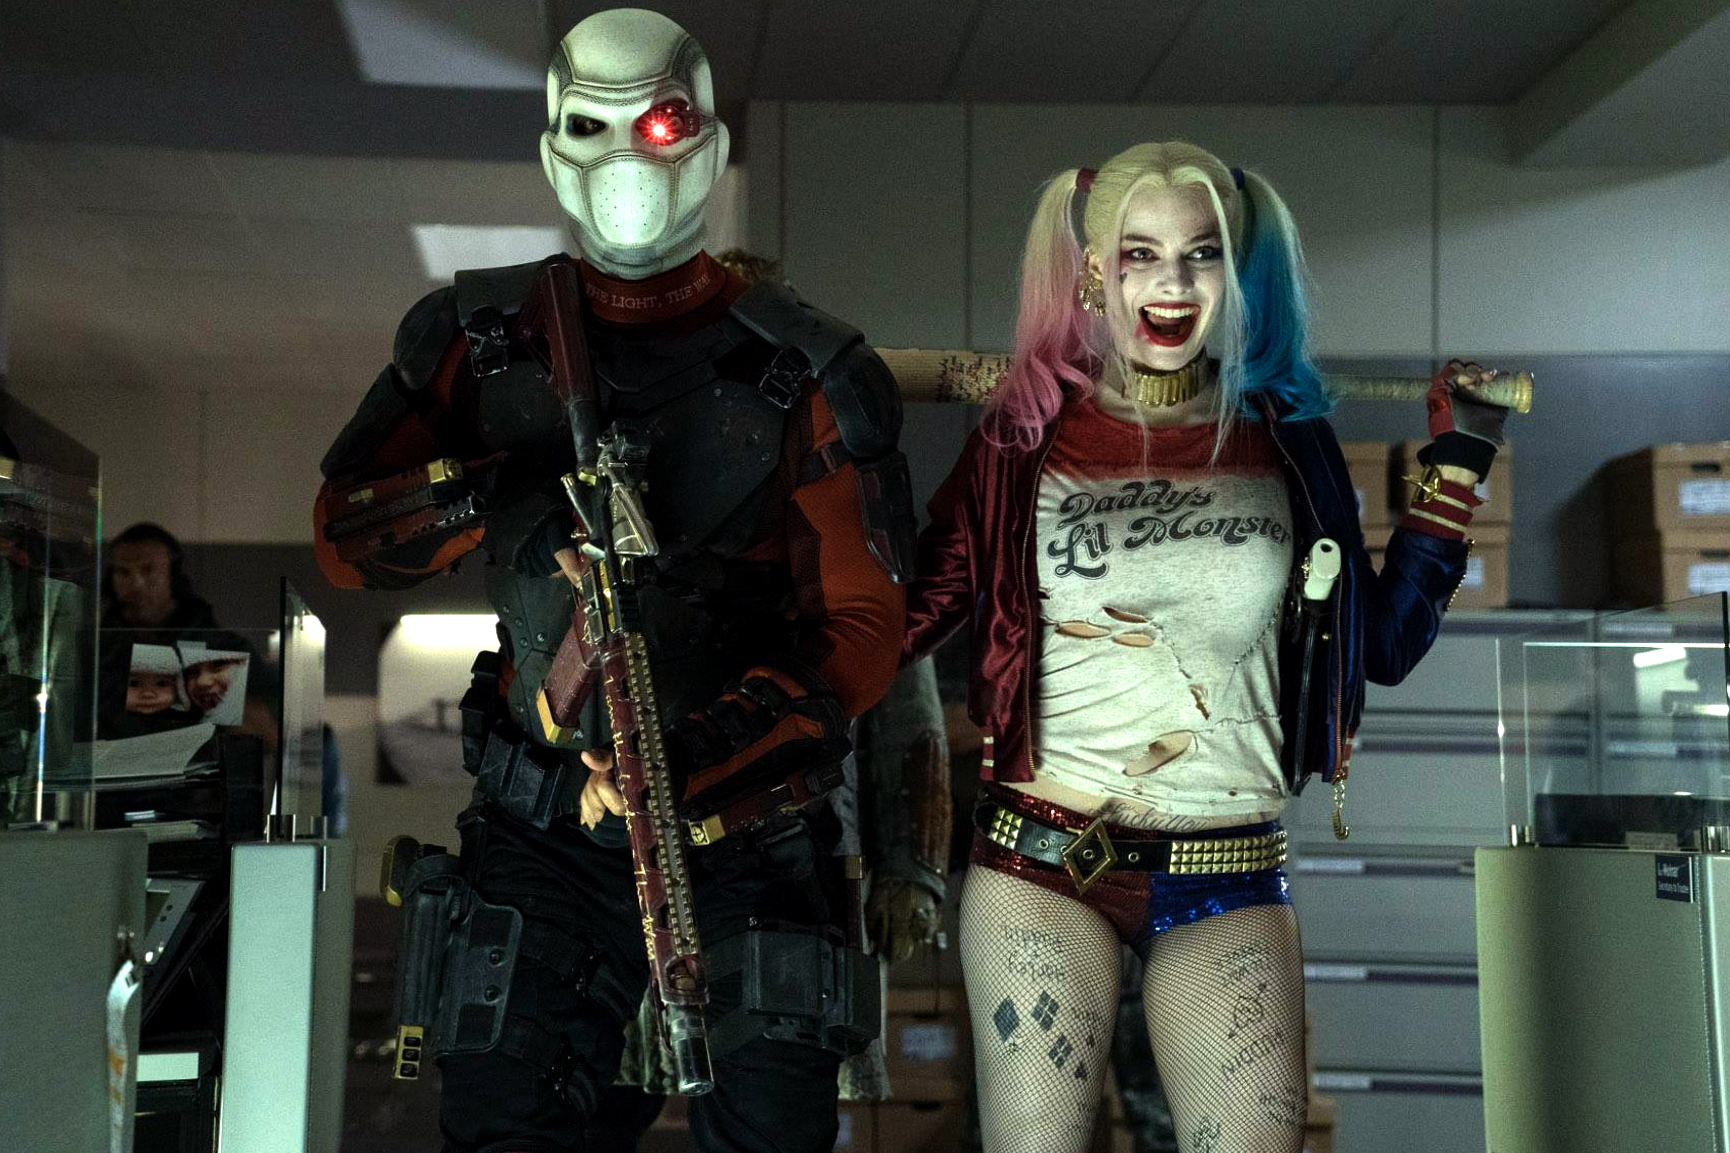 'Suicide Squad' Gives You an Extended Look on Harley Quinn, The Joker and Deadshot